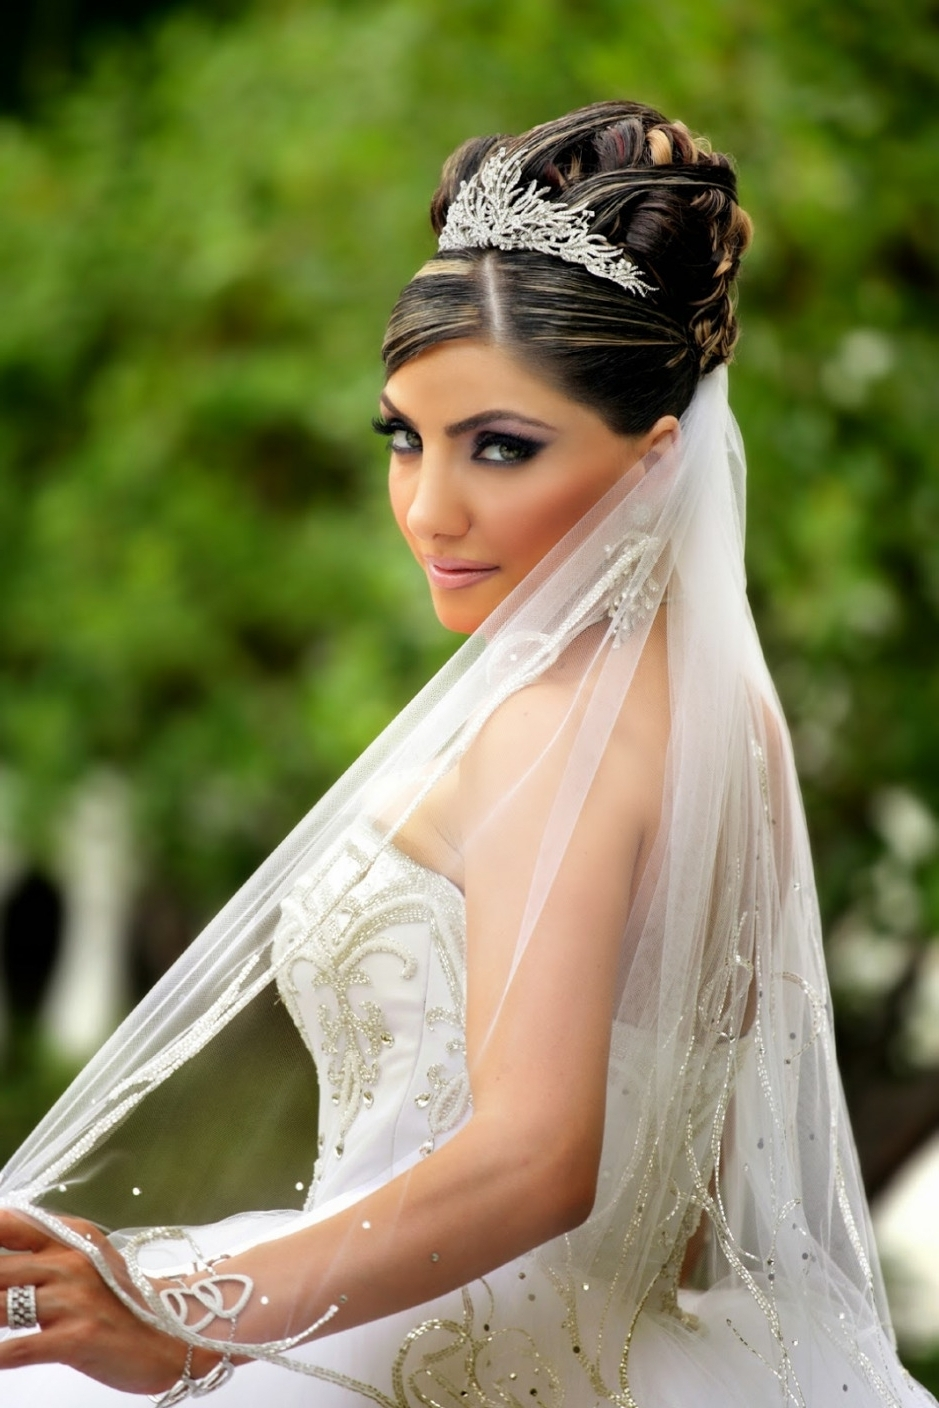 Latest Wedding Hairstyles With Tiara With Regard To Bridal Hairstyle With Tiara Hairstyles With Tiara Wedding Hairstyles (View 5 of 15)